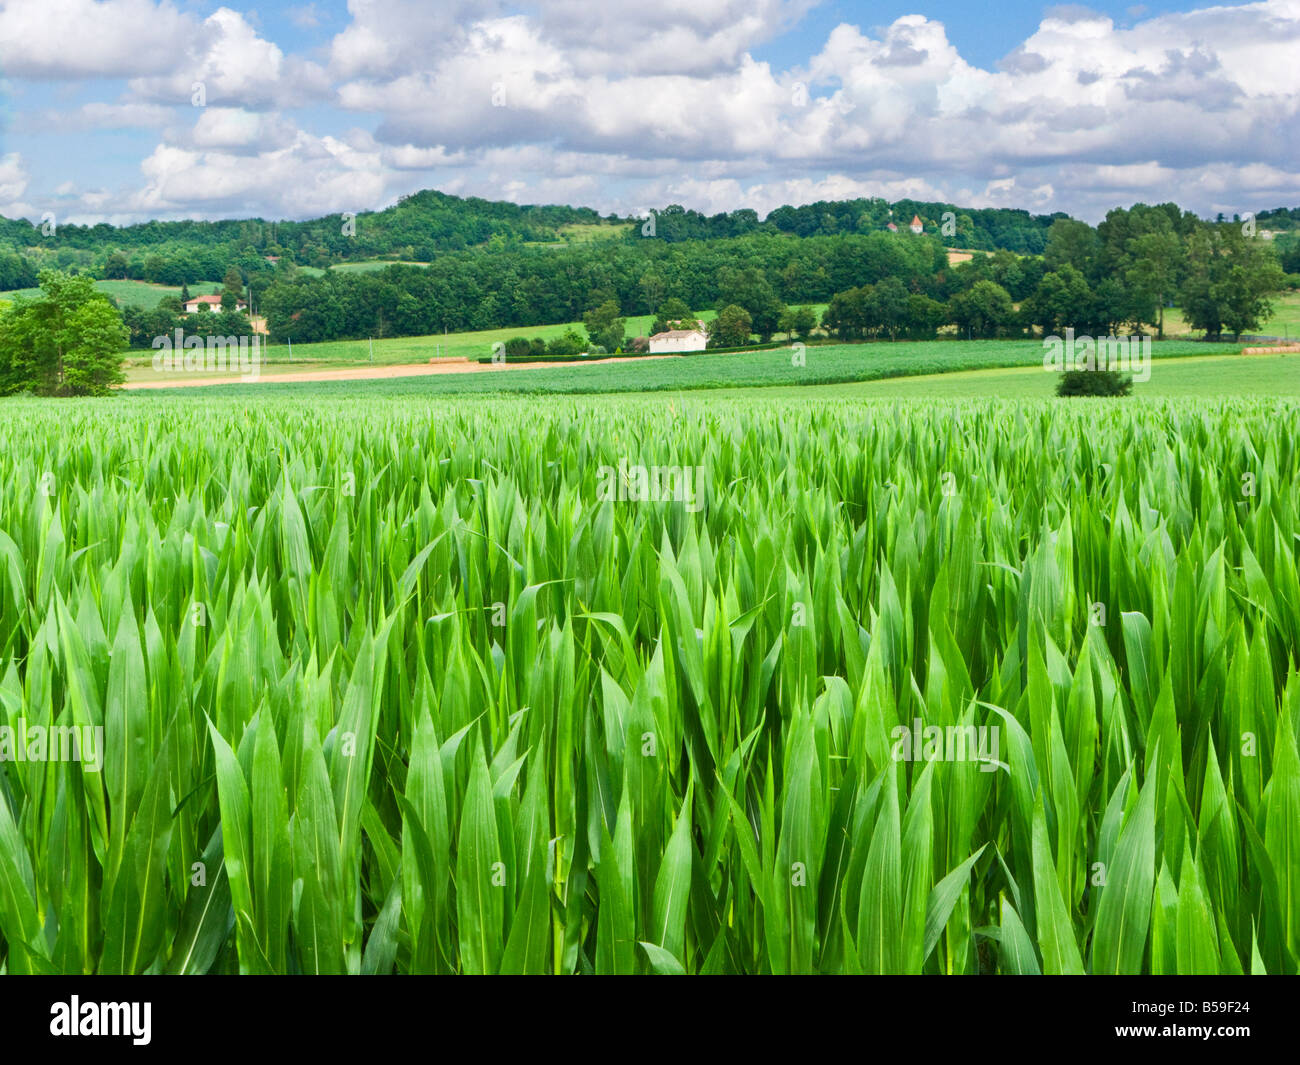 Field of maize in agriculture farmland in Tarn et Garonne, Southern France, Europe - Stock Image